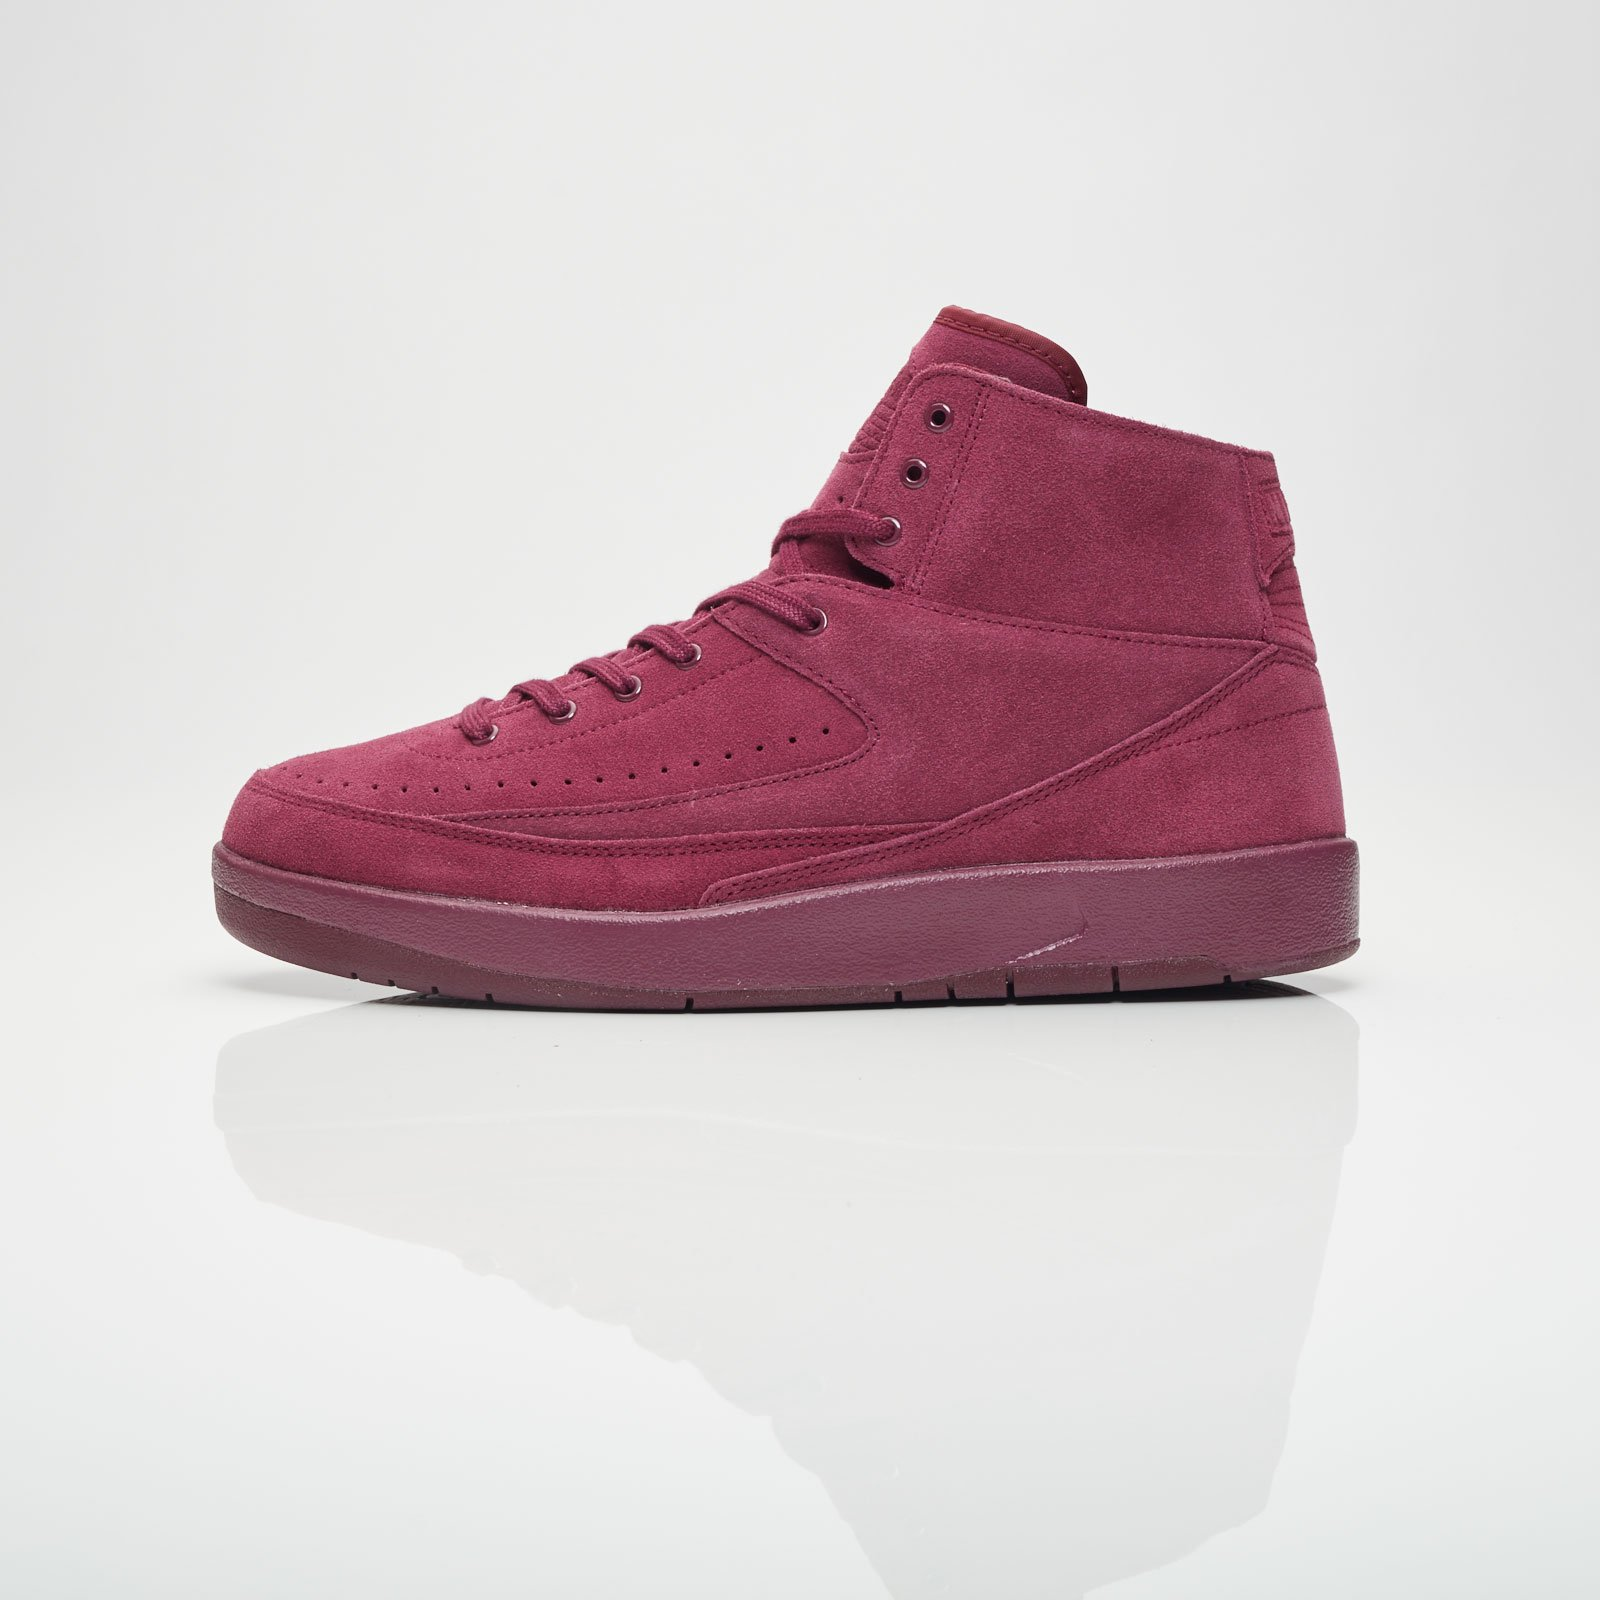 694a9a1feee4 Jordan Brand Air Jordan 2 Retro Decon - 897521-606 - Sneakersnstuff ...